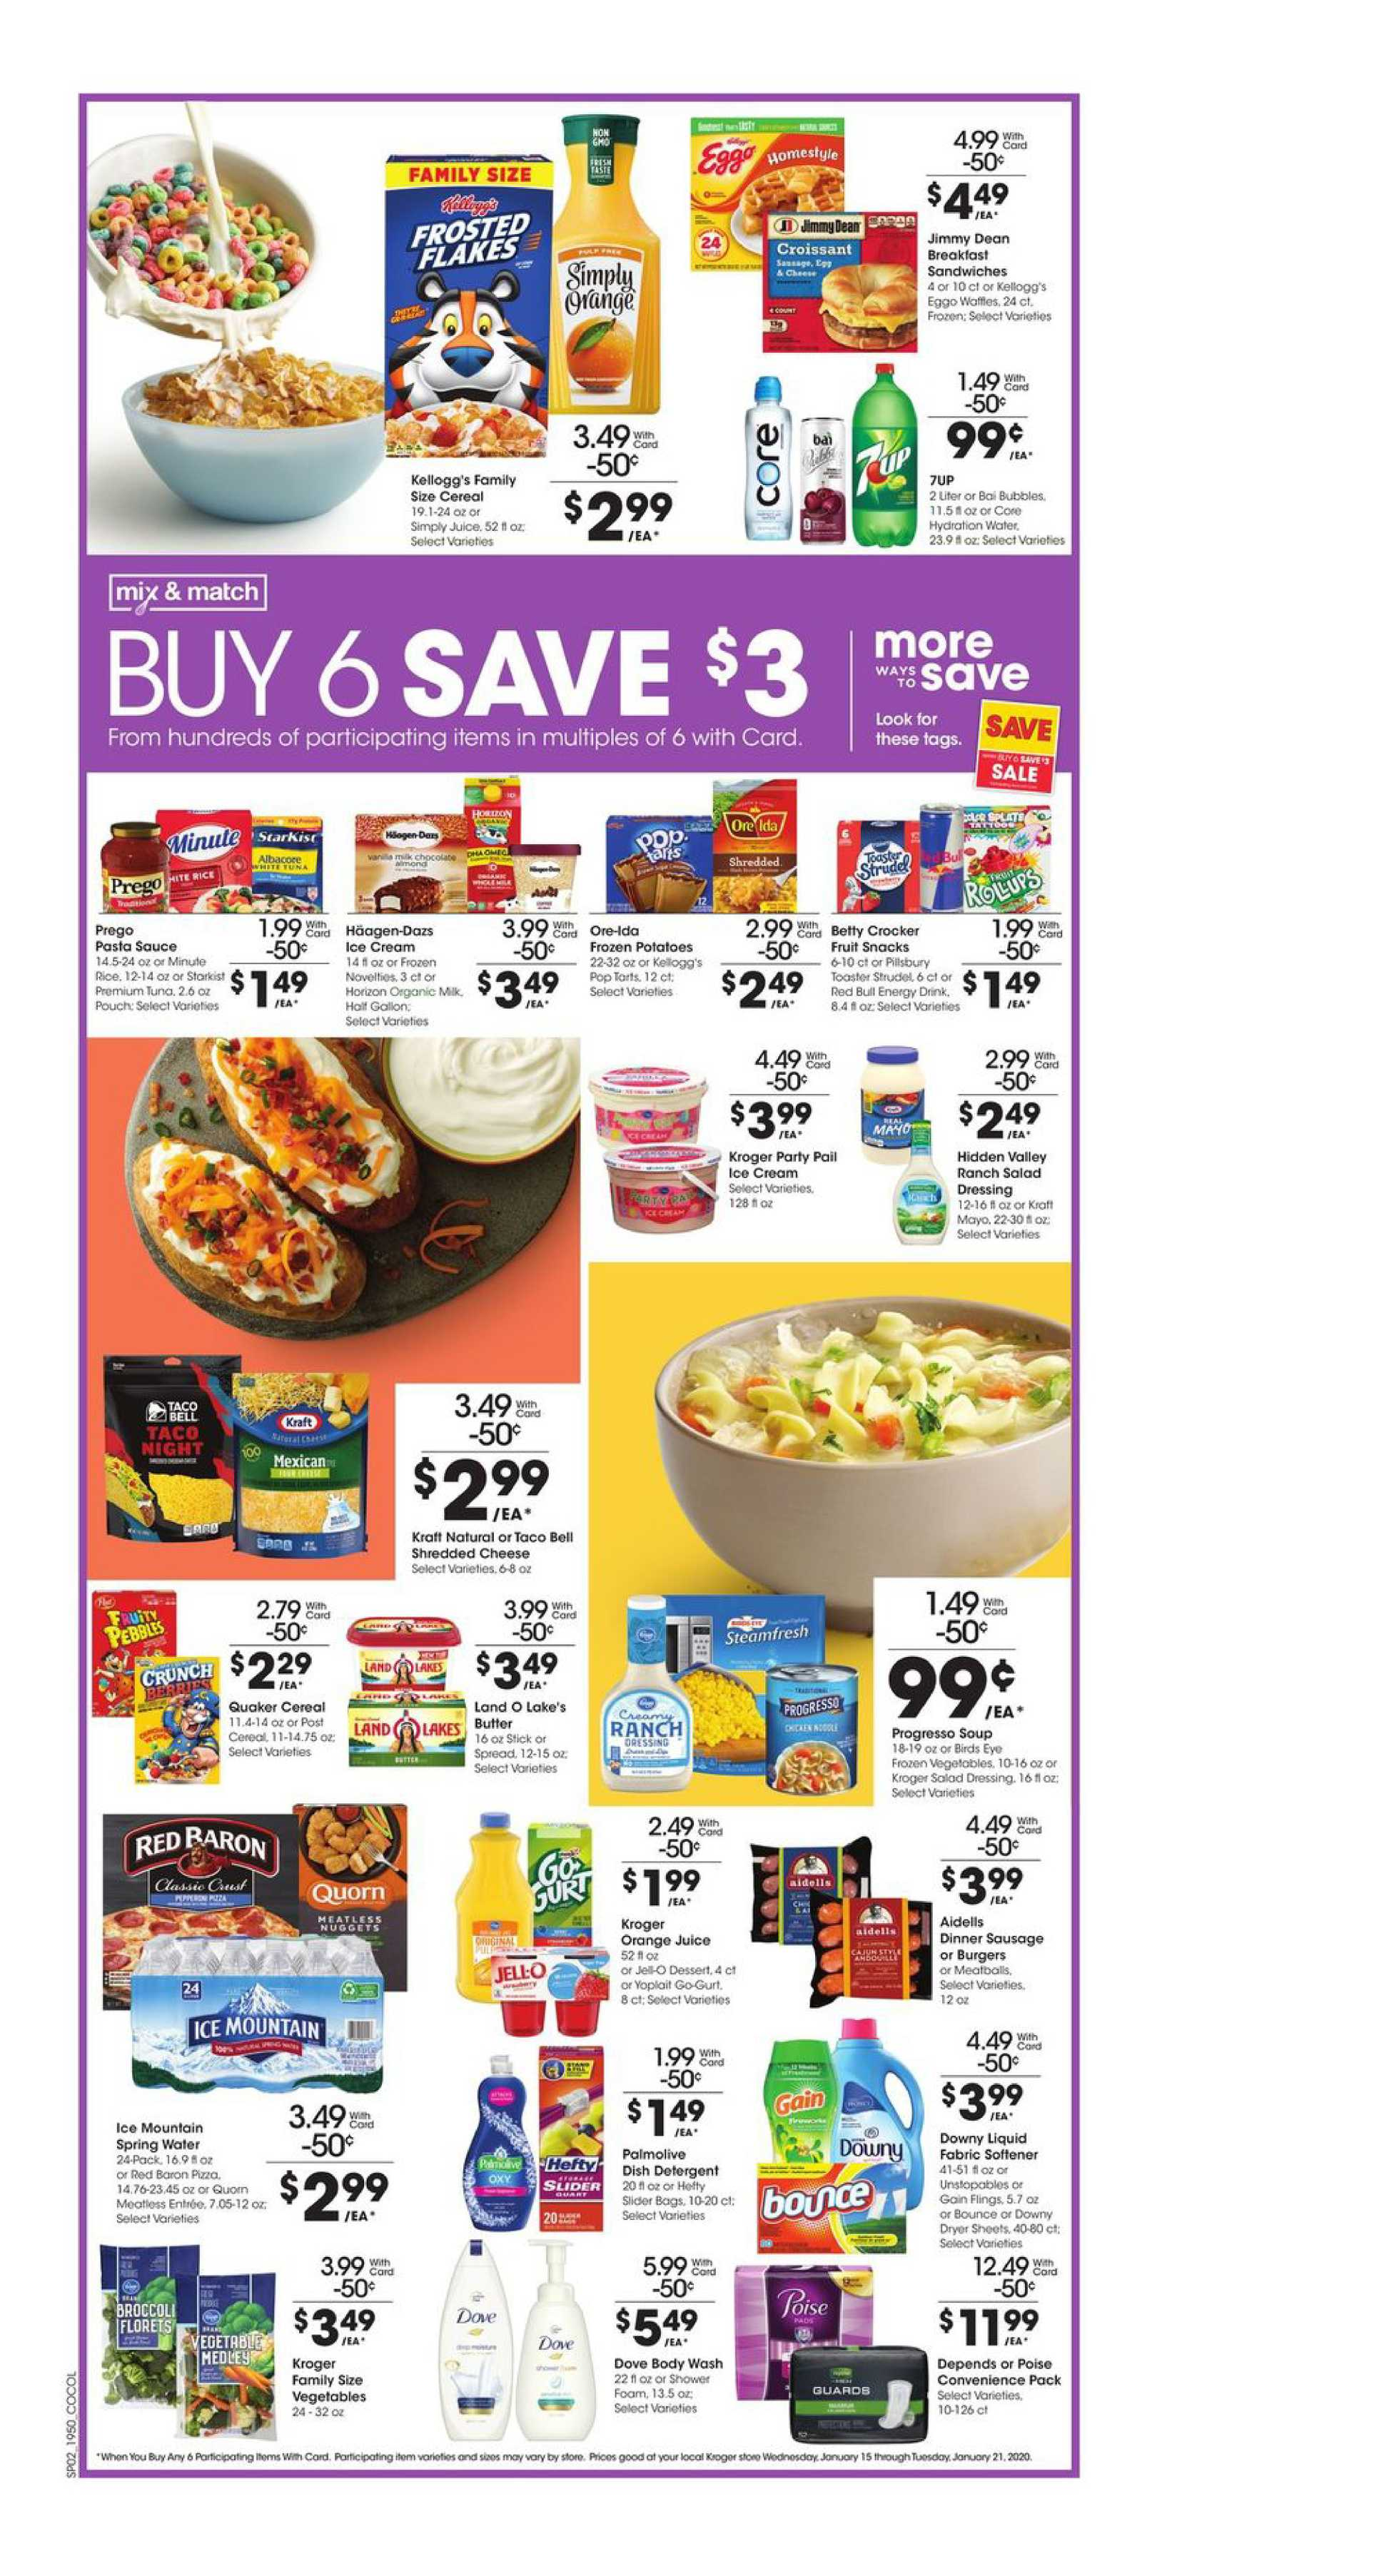 Kroger - promo starting from 01/15/20 to 01/21/20 - page 3. The promotion includes mayo, cereal, egg, cereal, mayo, egg